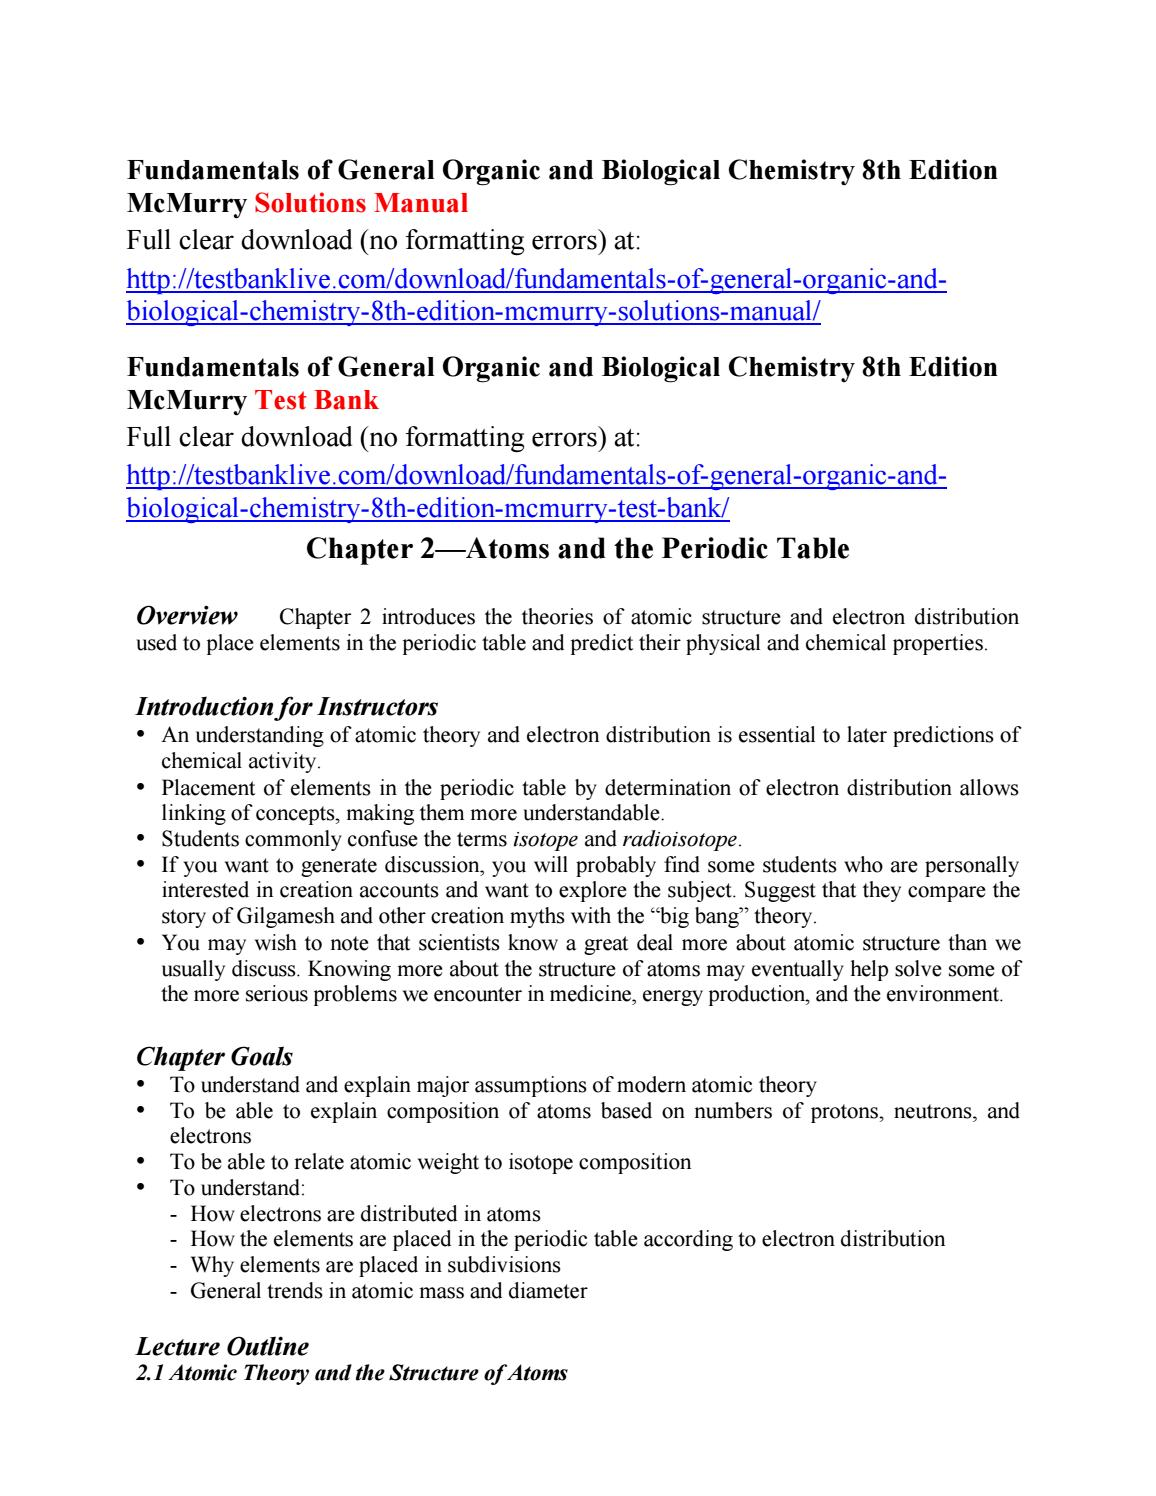 Fundamentals of general organic and biological chemistry 8th edition  mcmurry solutions manual by Adamsoo00 - issuu